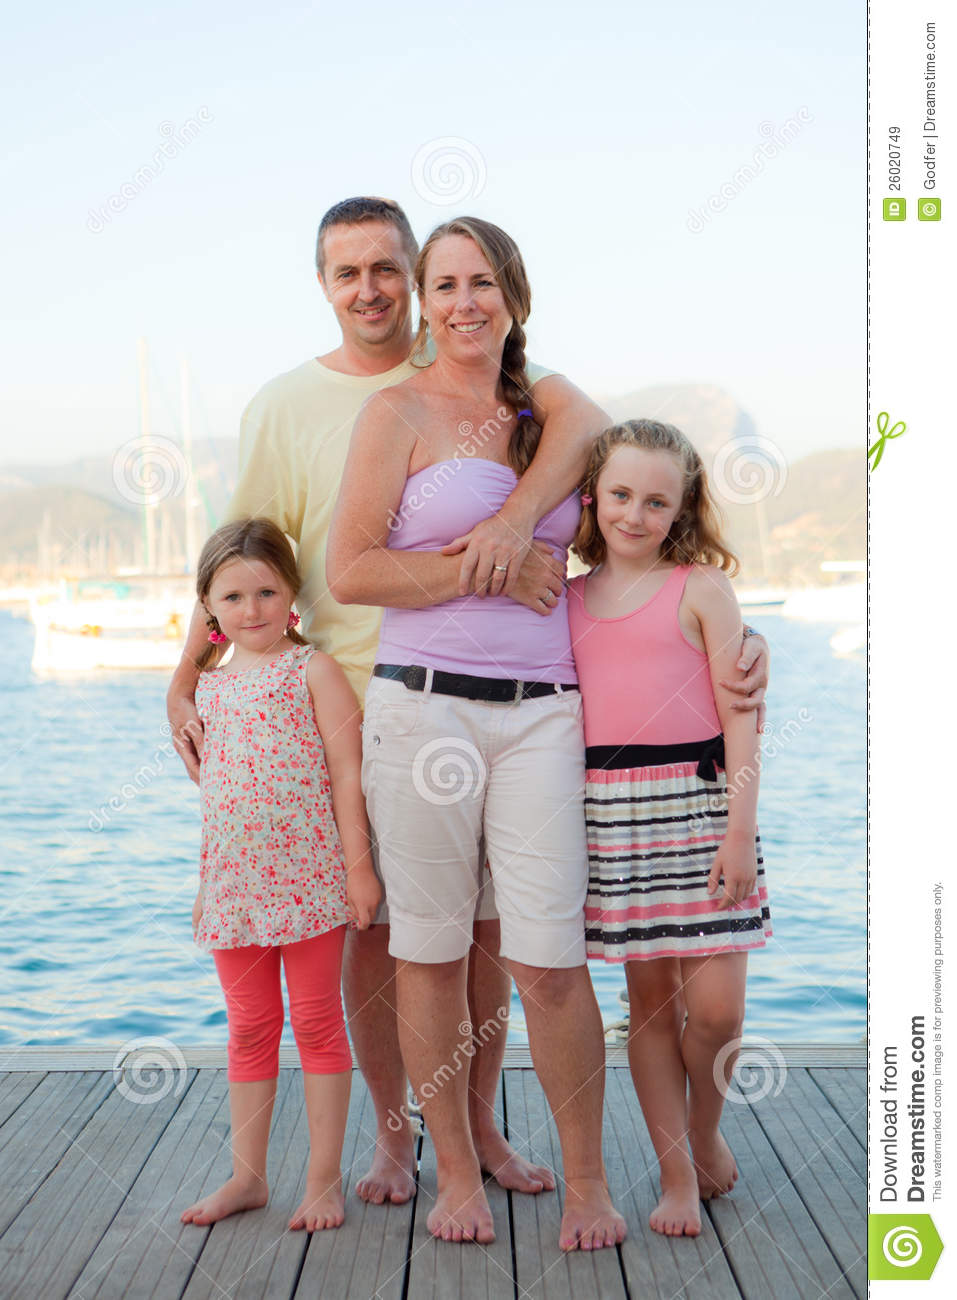 Family Vacation Royalty Free Stock Images - Image: 26020749